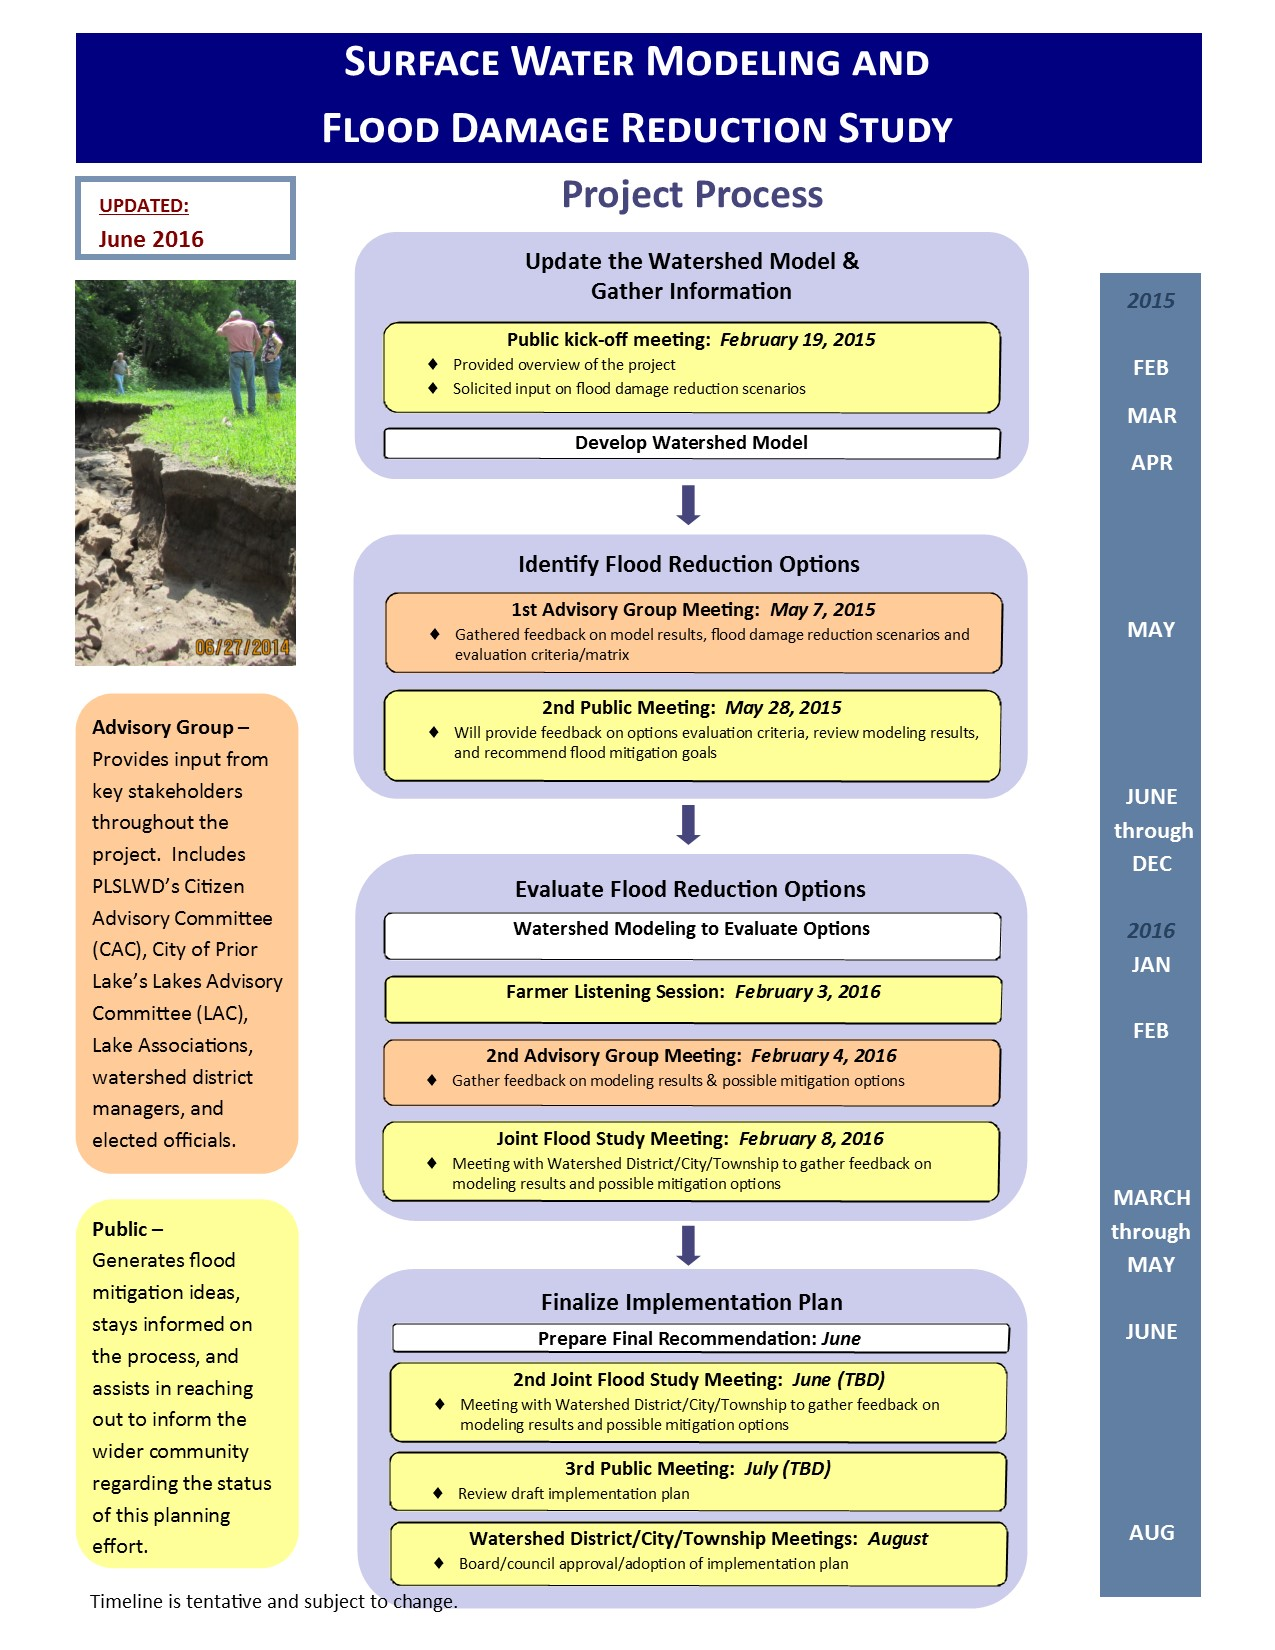 Updated Project Process Chart 2016_06_01